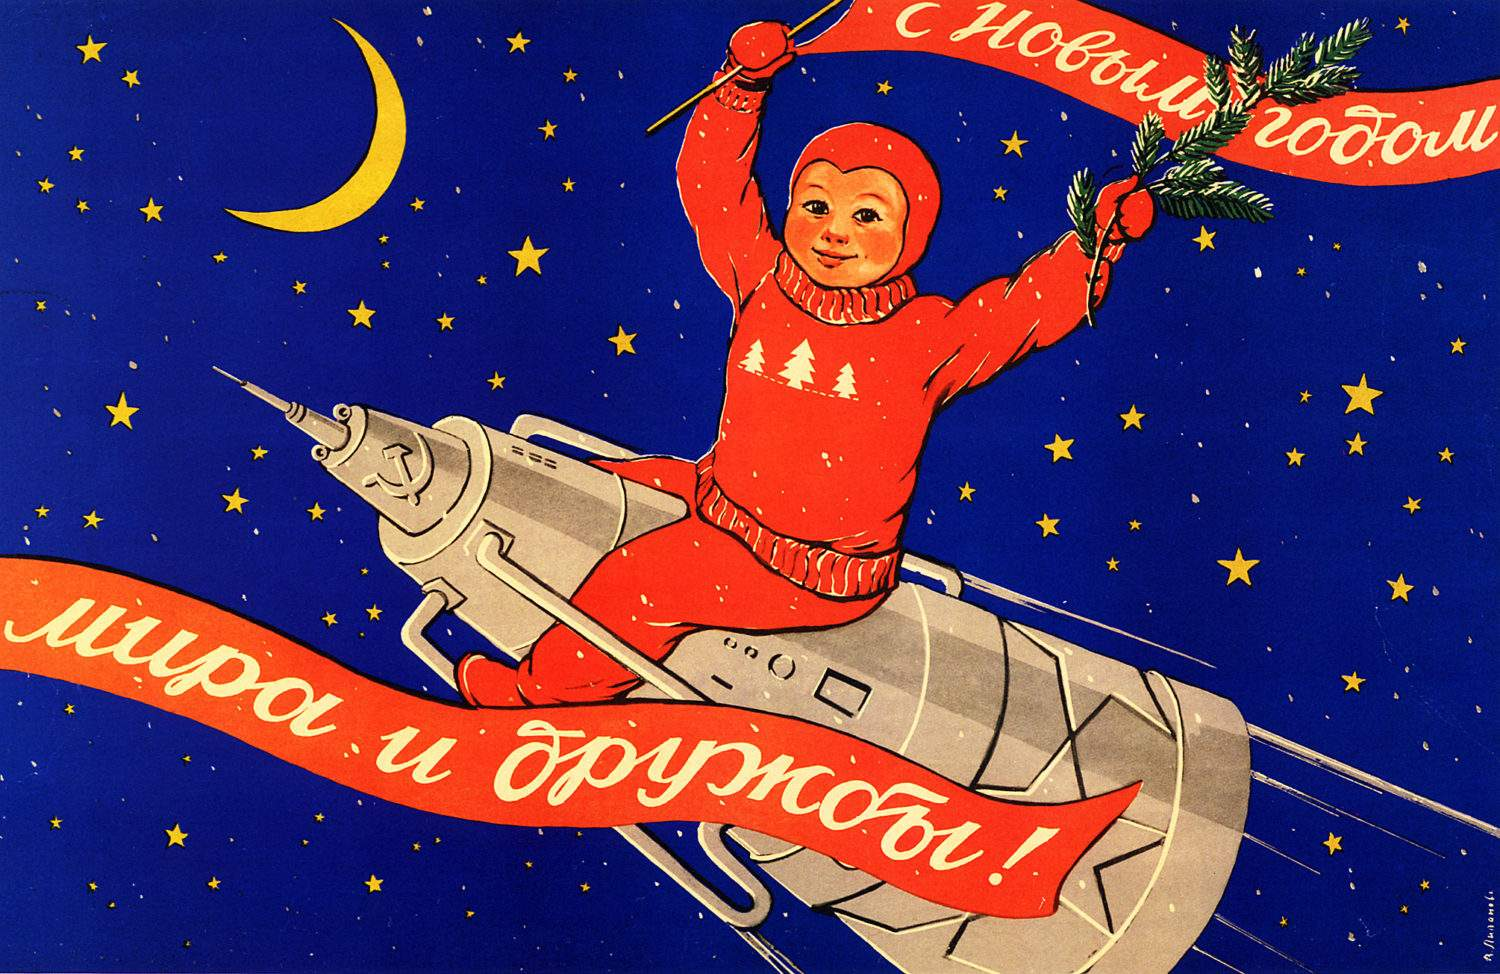 soviet-space-program-propaganda-poster-29